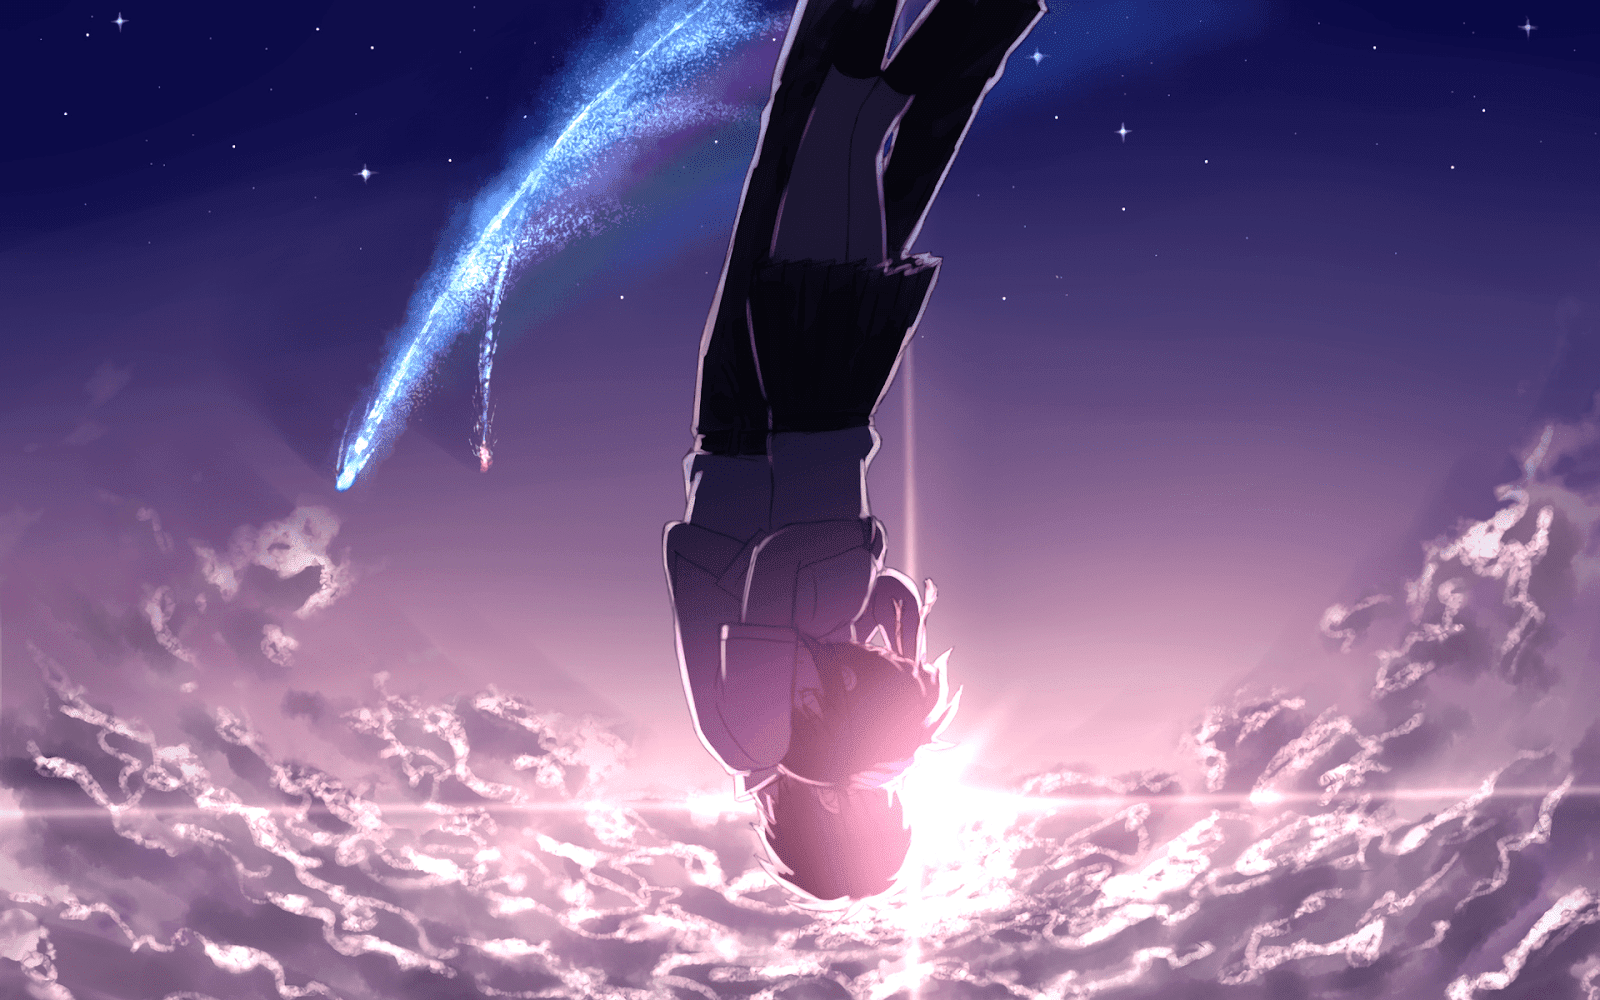 AowVN%2B%252841%2529 - [ Hình Nền ] Anime Your Name. - Kimi no Nawa full HD cực đẹp | Anime Wallpaper